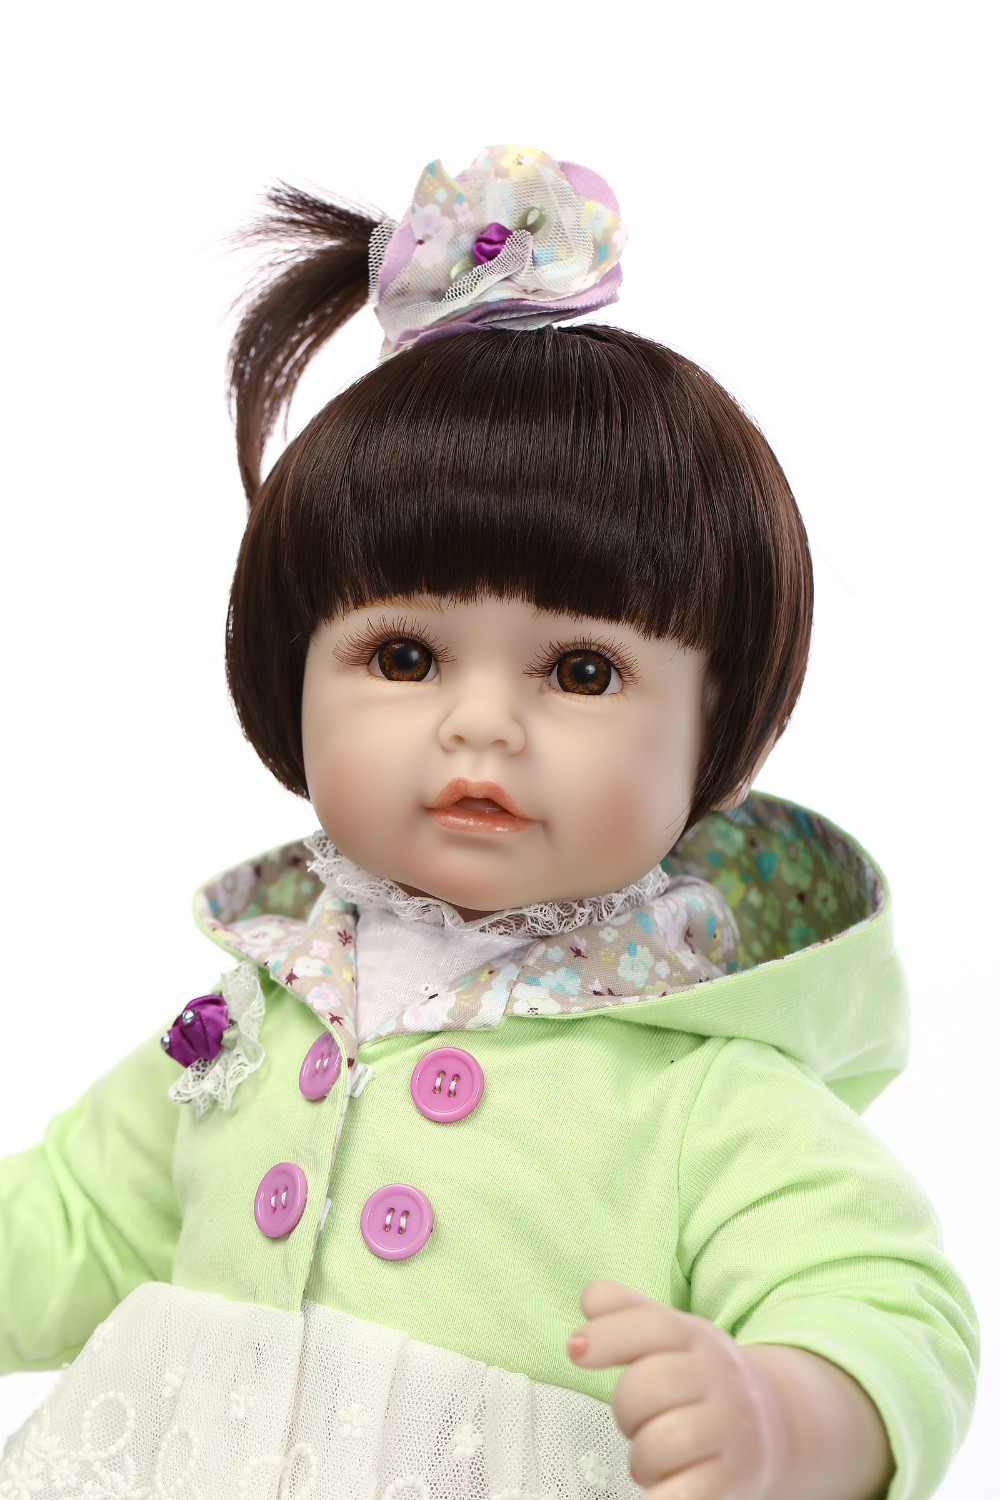 20inch 50cm Silicone vinyl reborn toddler doll toy for girl lifelike princess dolls play house toy birthday Children's Day gift lifelike american 18 inches girl doll prices toy for children vinyl princess doll toys girl newest design